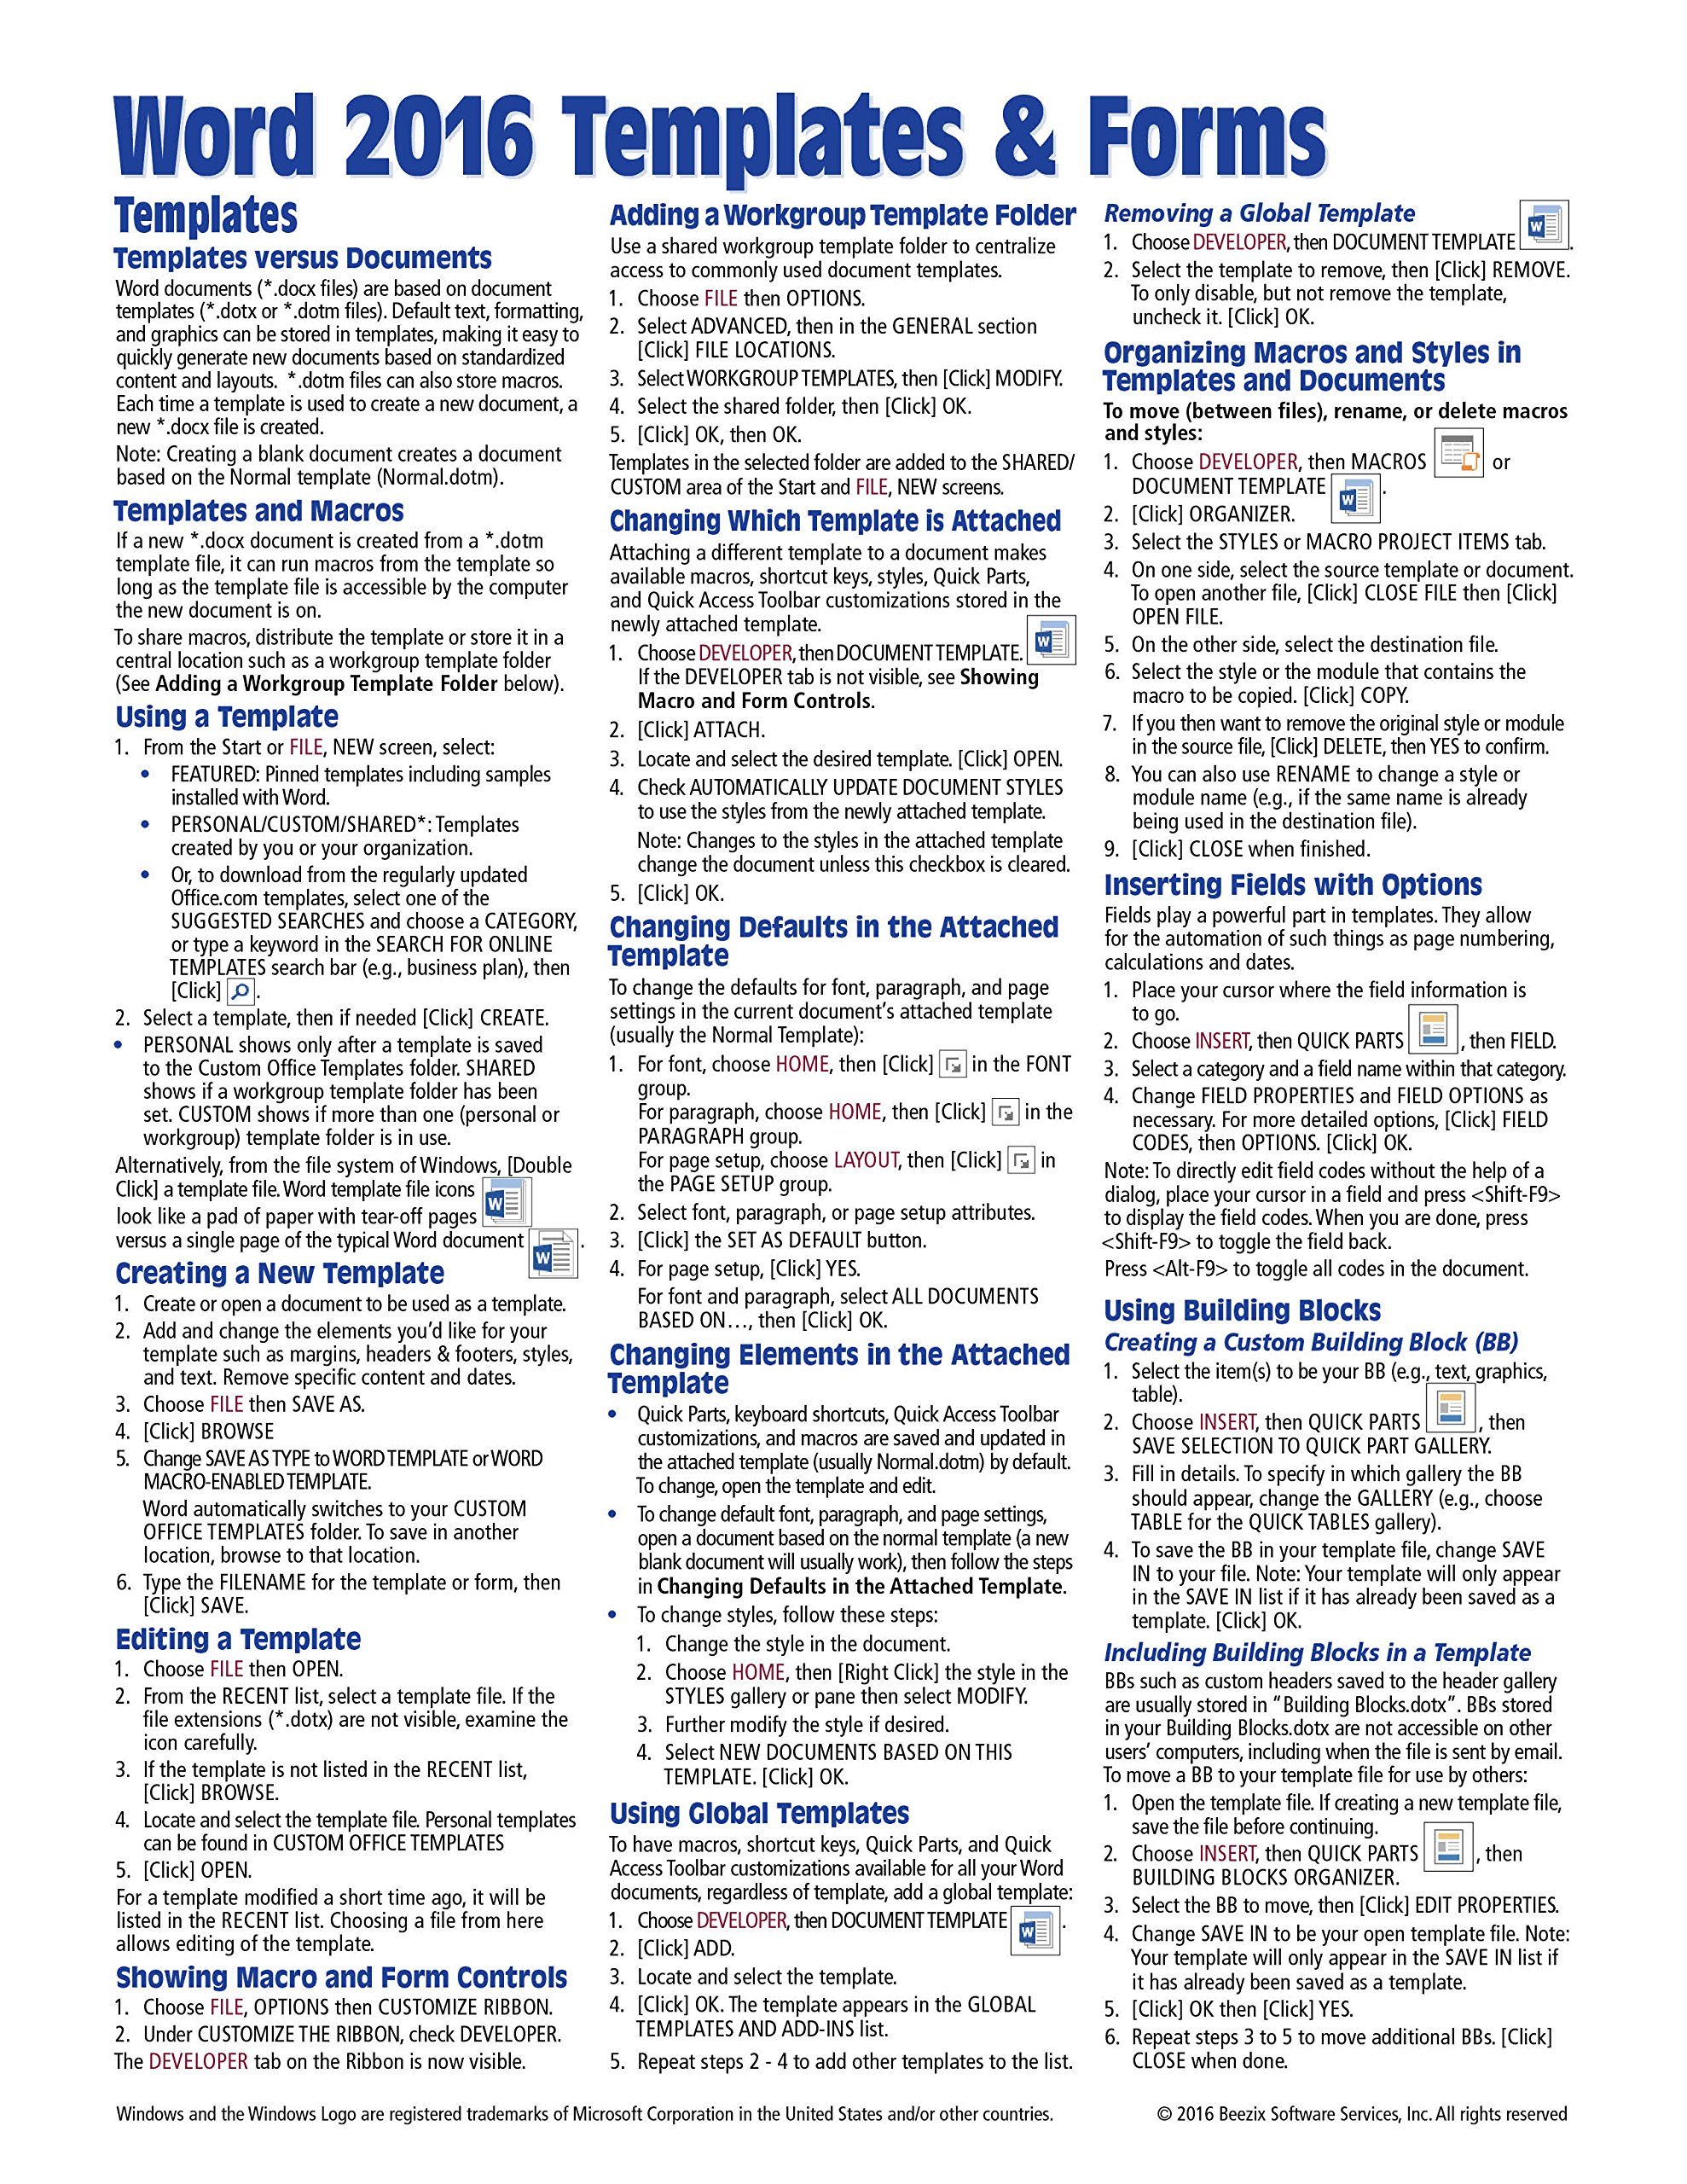 Microsoft Word 2016 Templates & Forms Quick Reference Guide ...